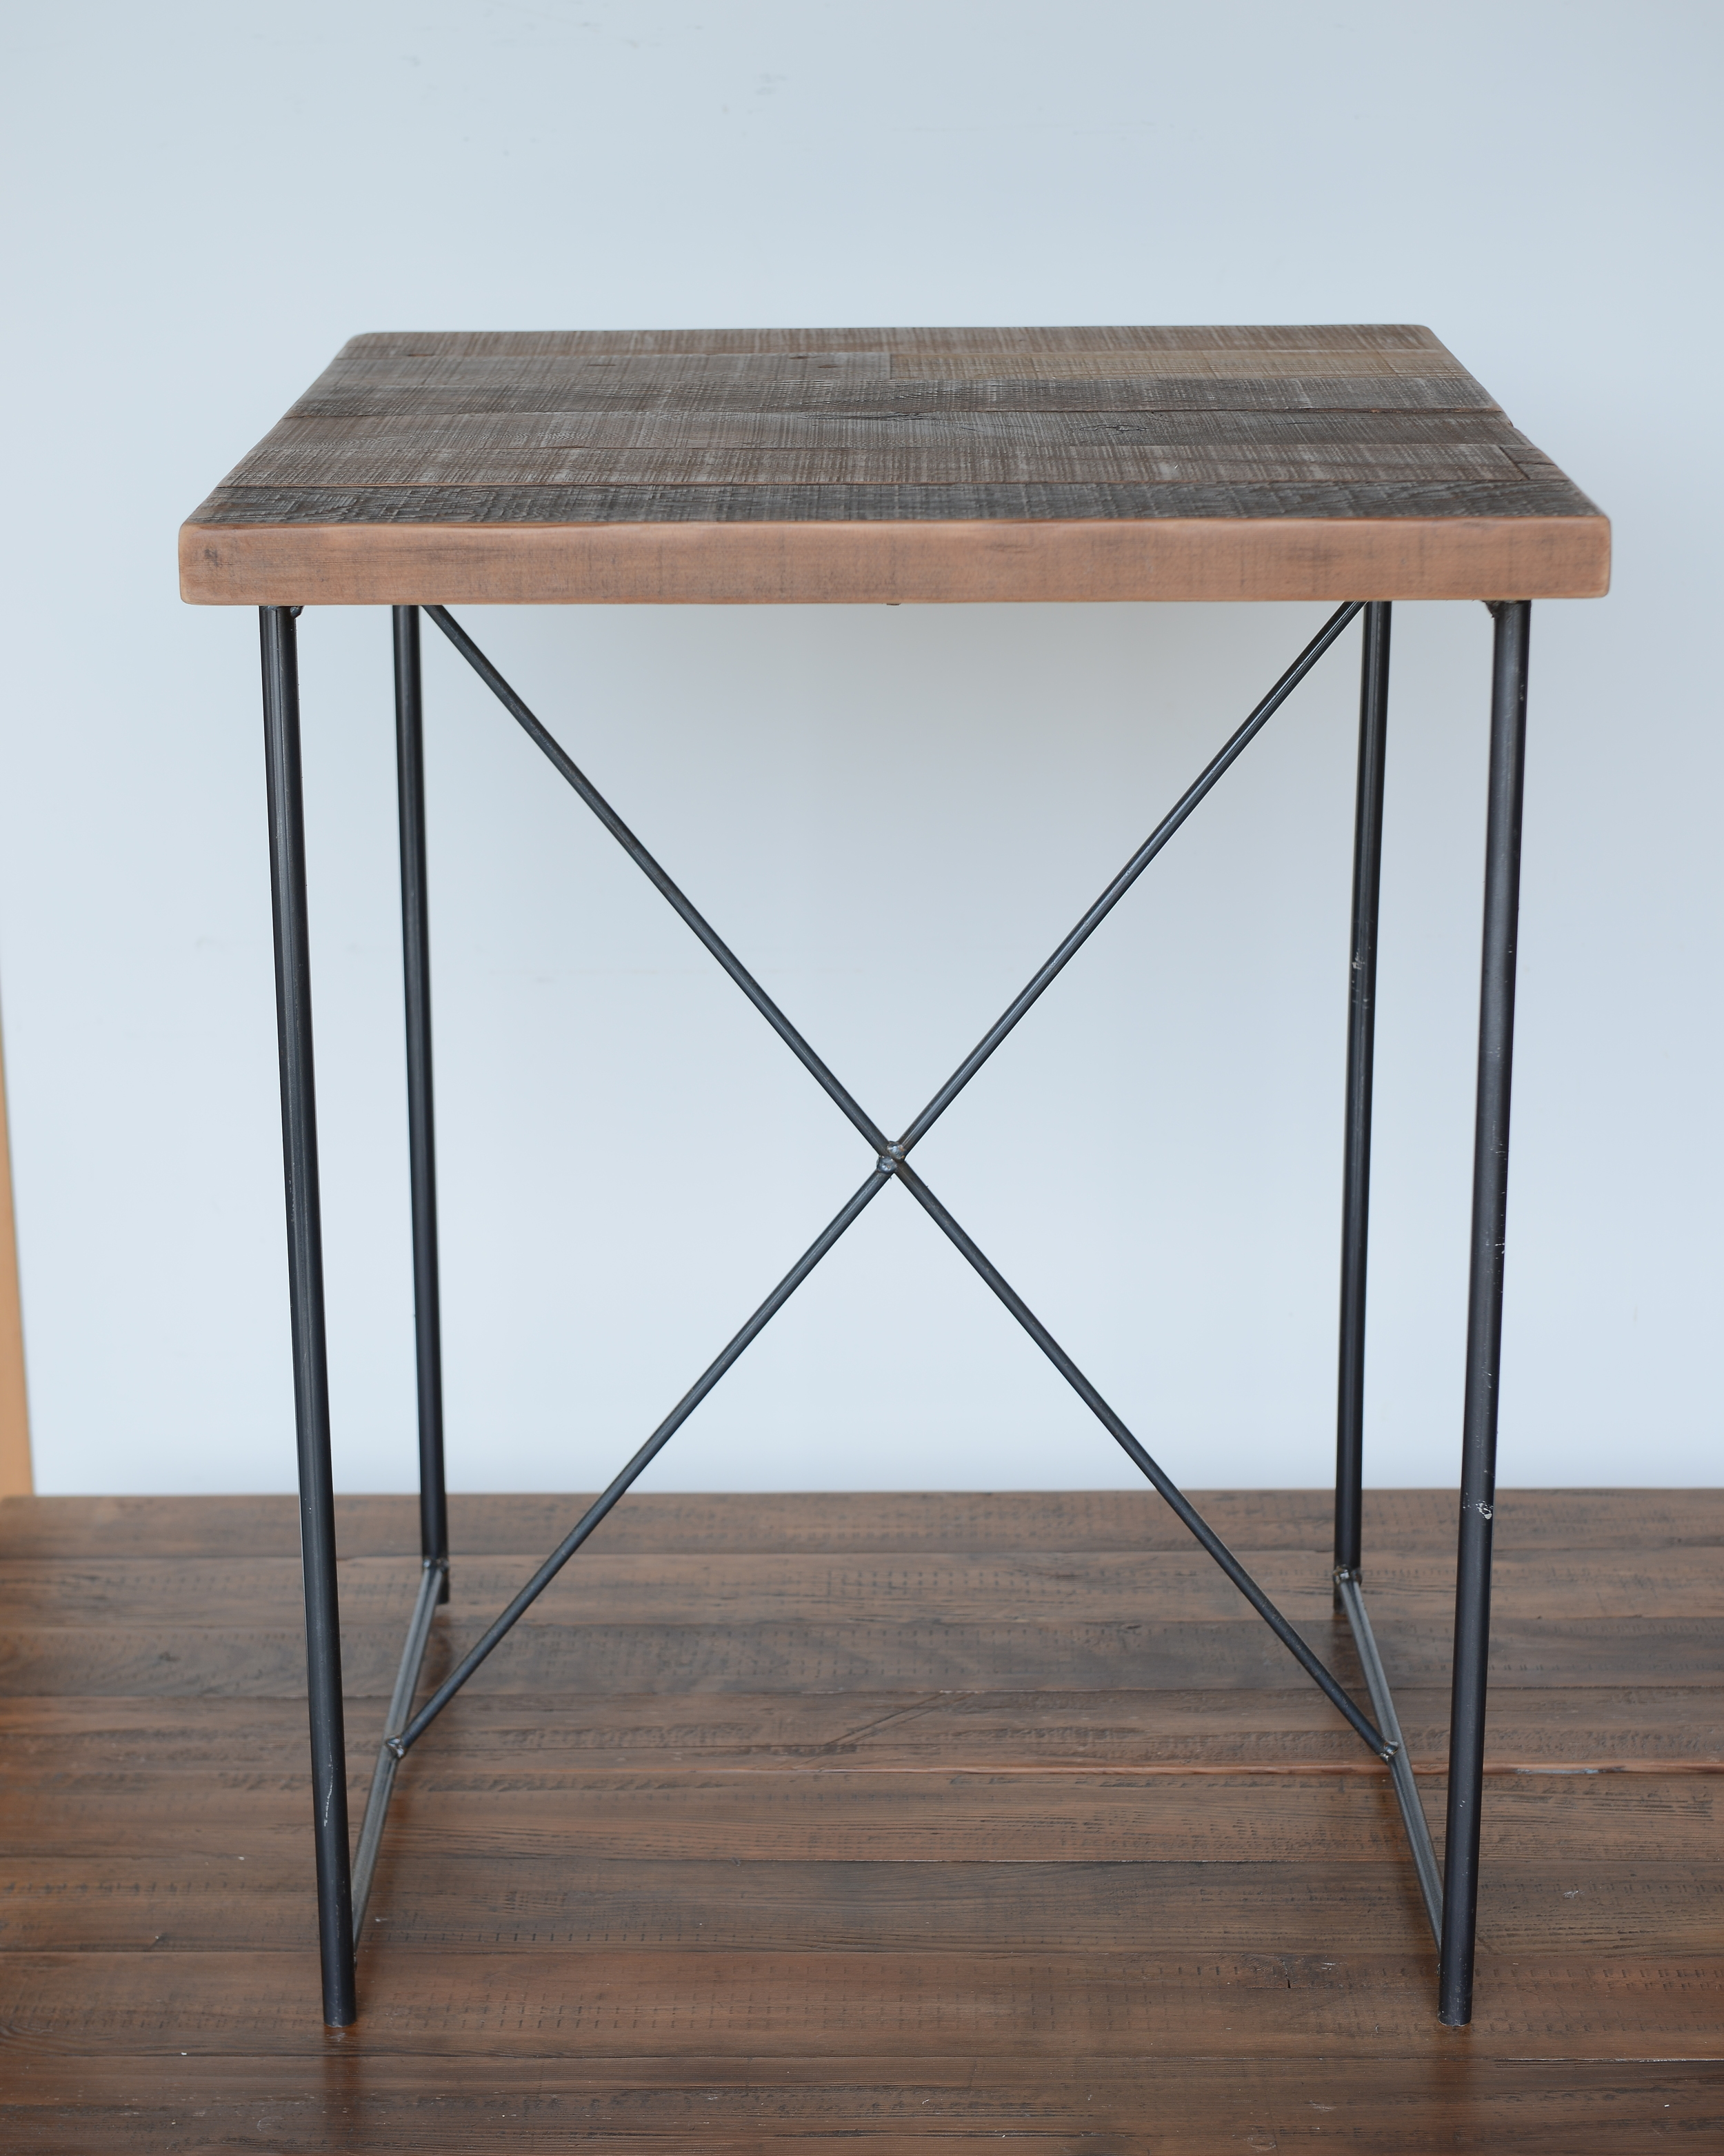 TS-I-07 Coffee table 實心黑鐵 x 栂木  NT 8,600 (未稅)